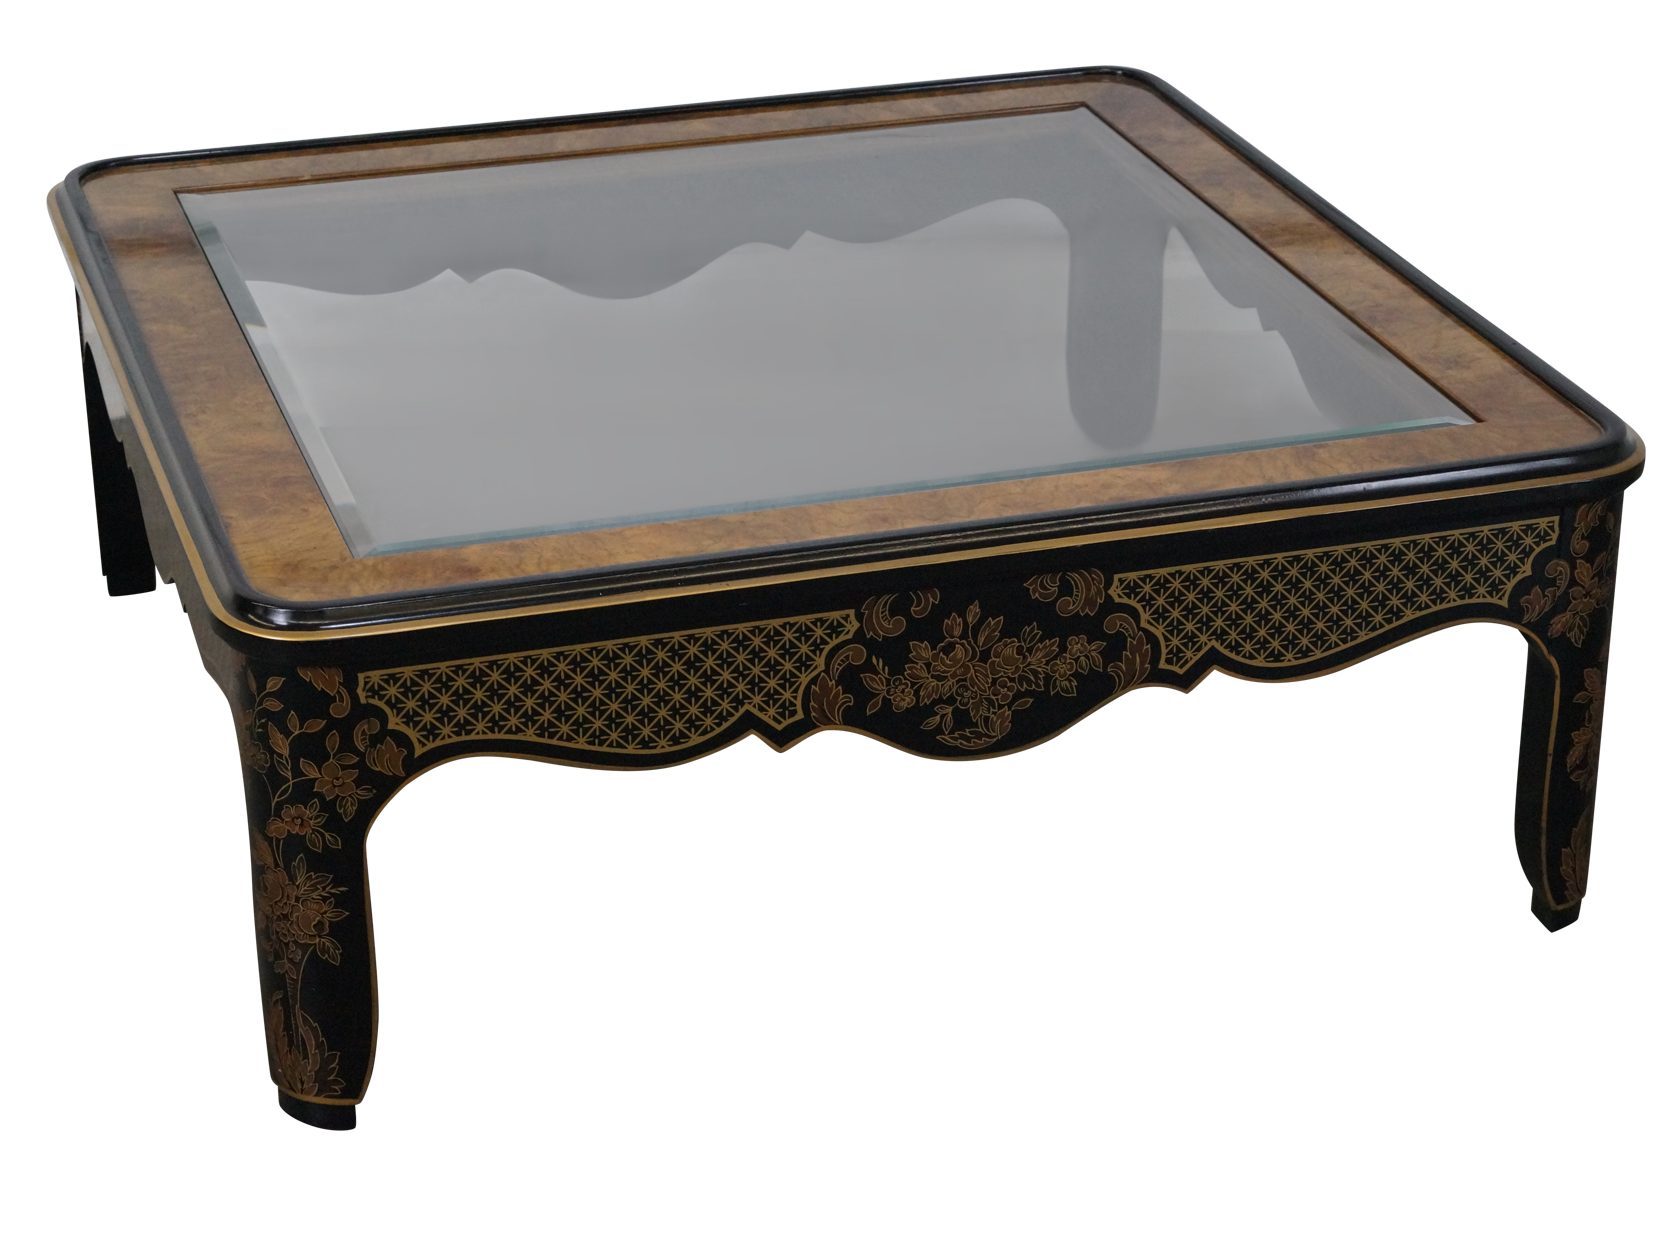 drexel heritage square burl wood coffee table | chairish